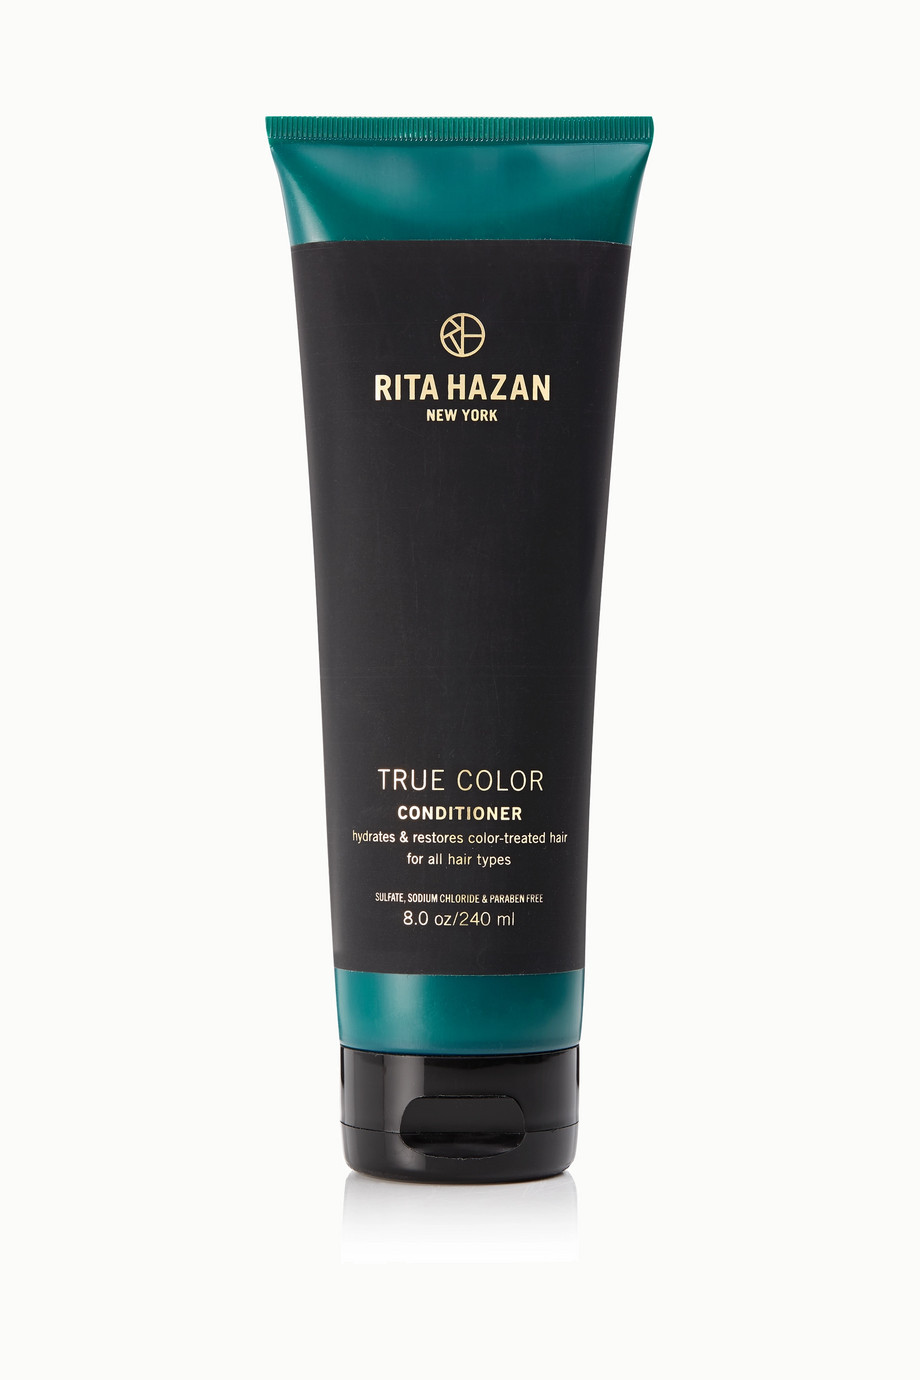 RITA HAZAN True Color Conditioner, 240ml